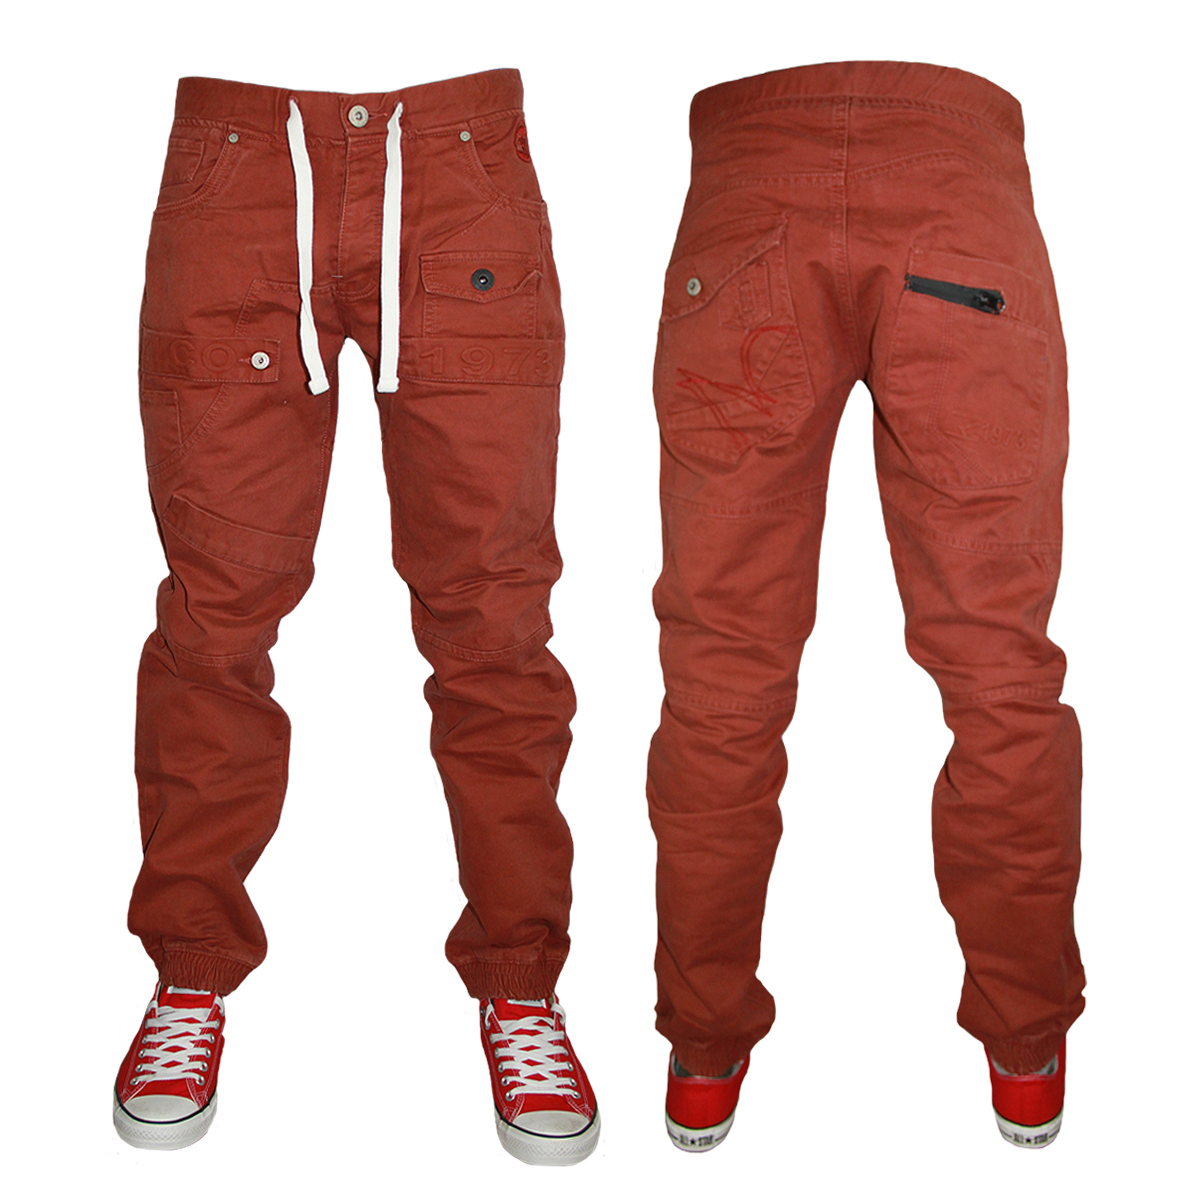 Kids Boys Zico Jeans Mjt38 Designer Cuffed Tapered Chinos All Waist And Leg Size